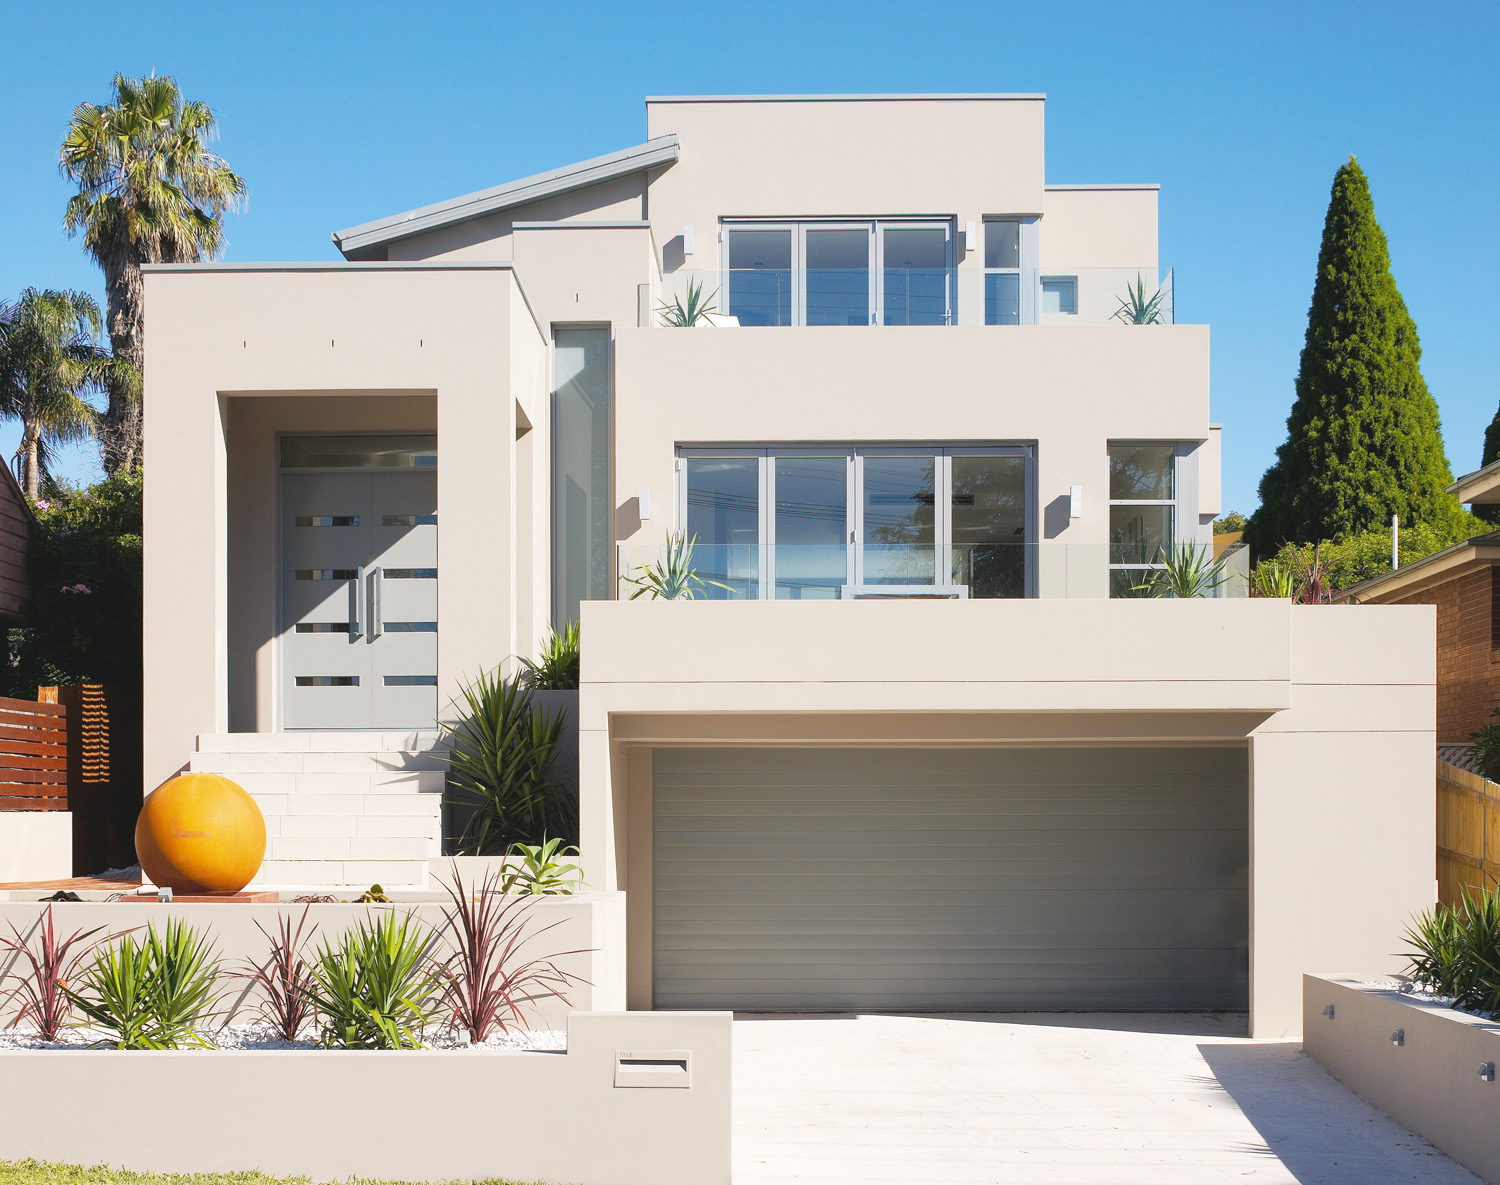 The property is situated in north-western Sydney with views across the Putney Peninsula and beyond.